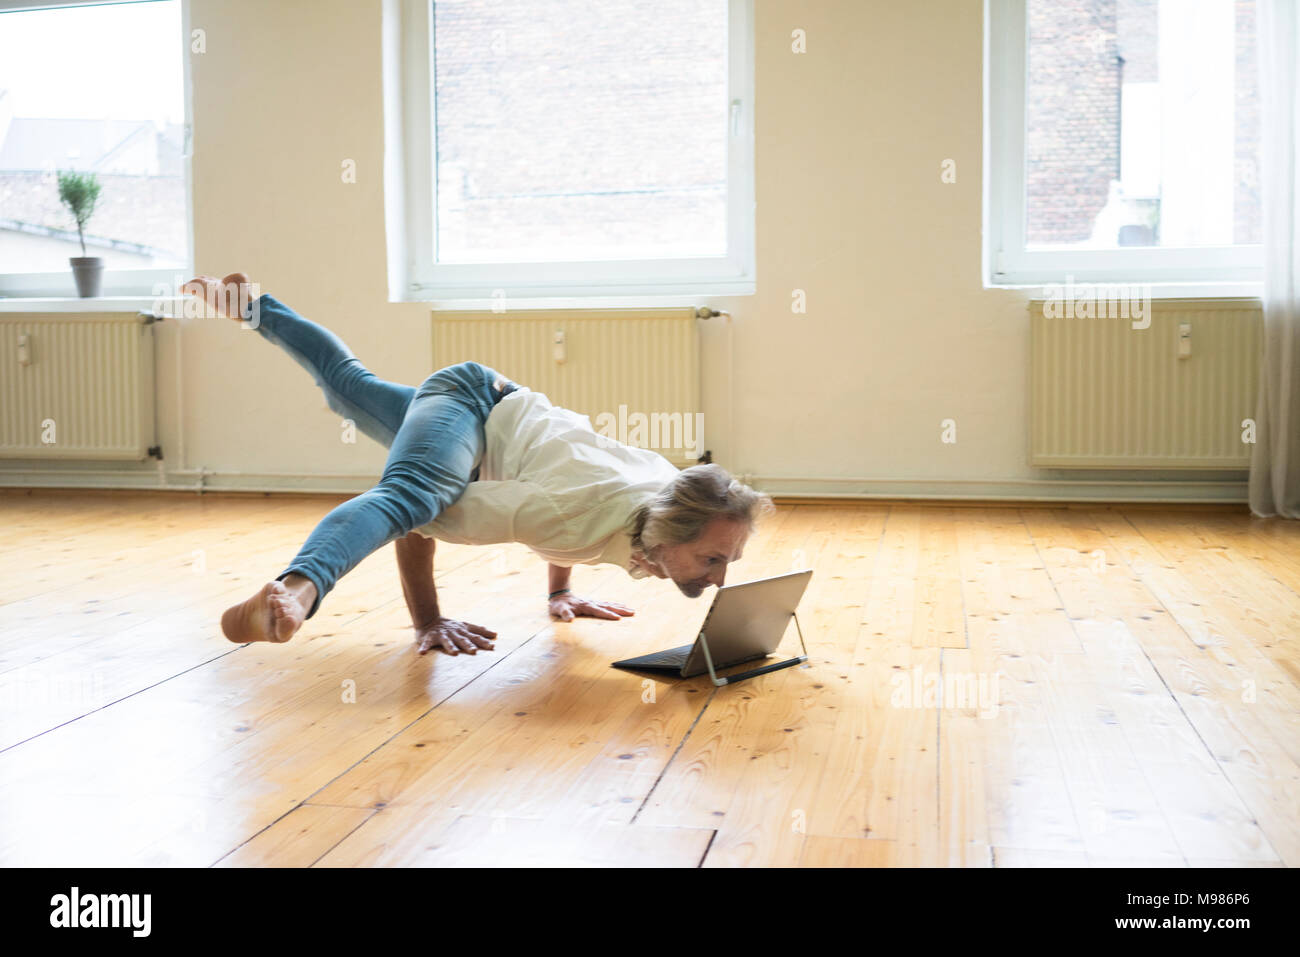 Mature man doing a handstand on floor in empty room looking at tablet - Stock Image